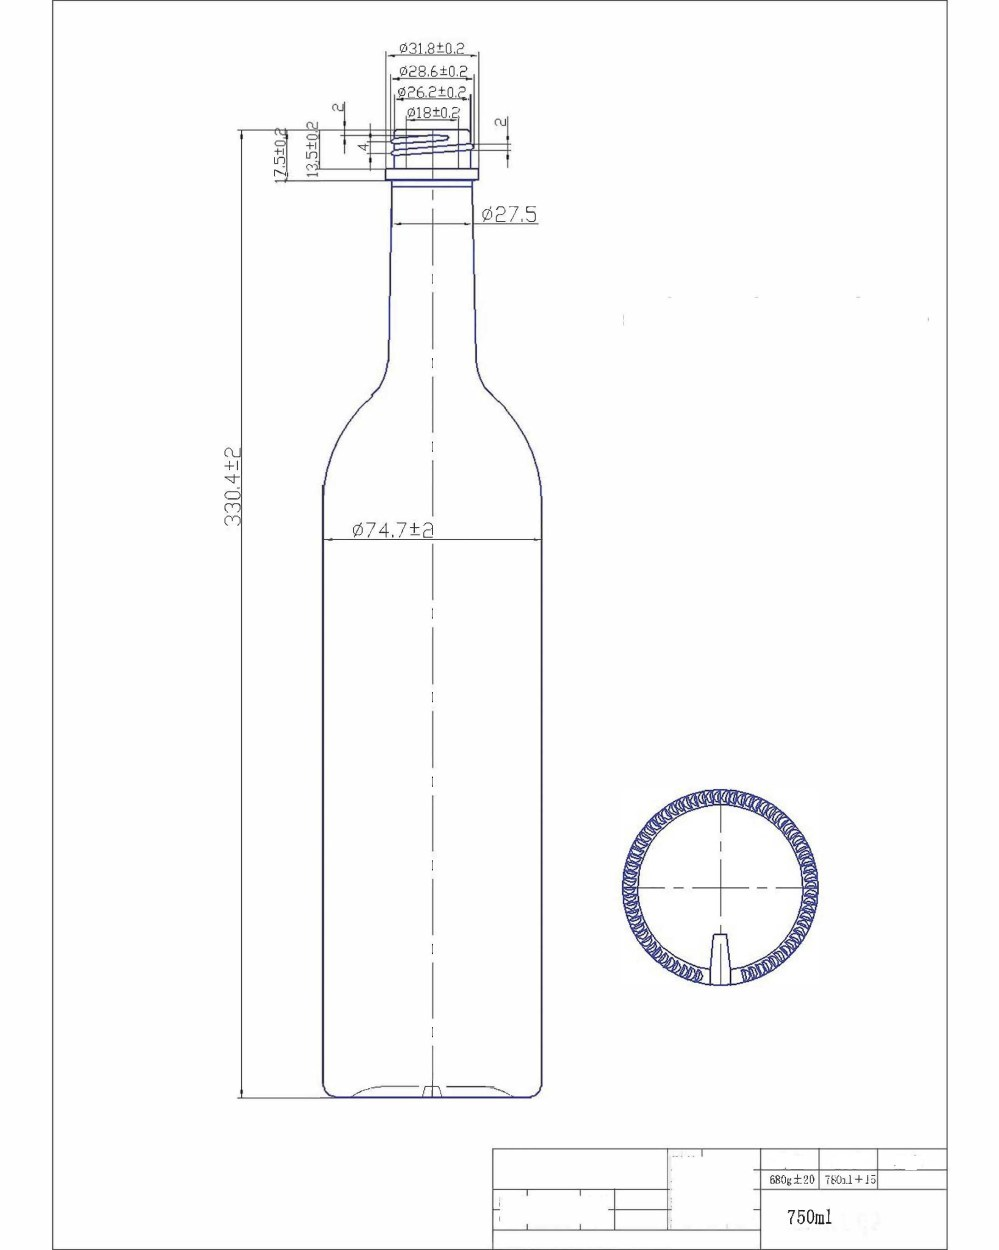 medium resolution of 750ml model jpg glass